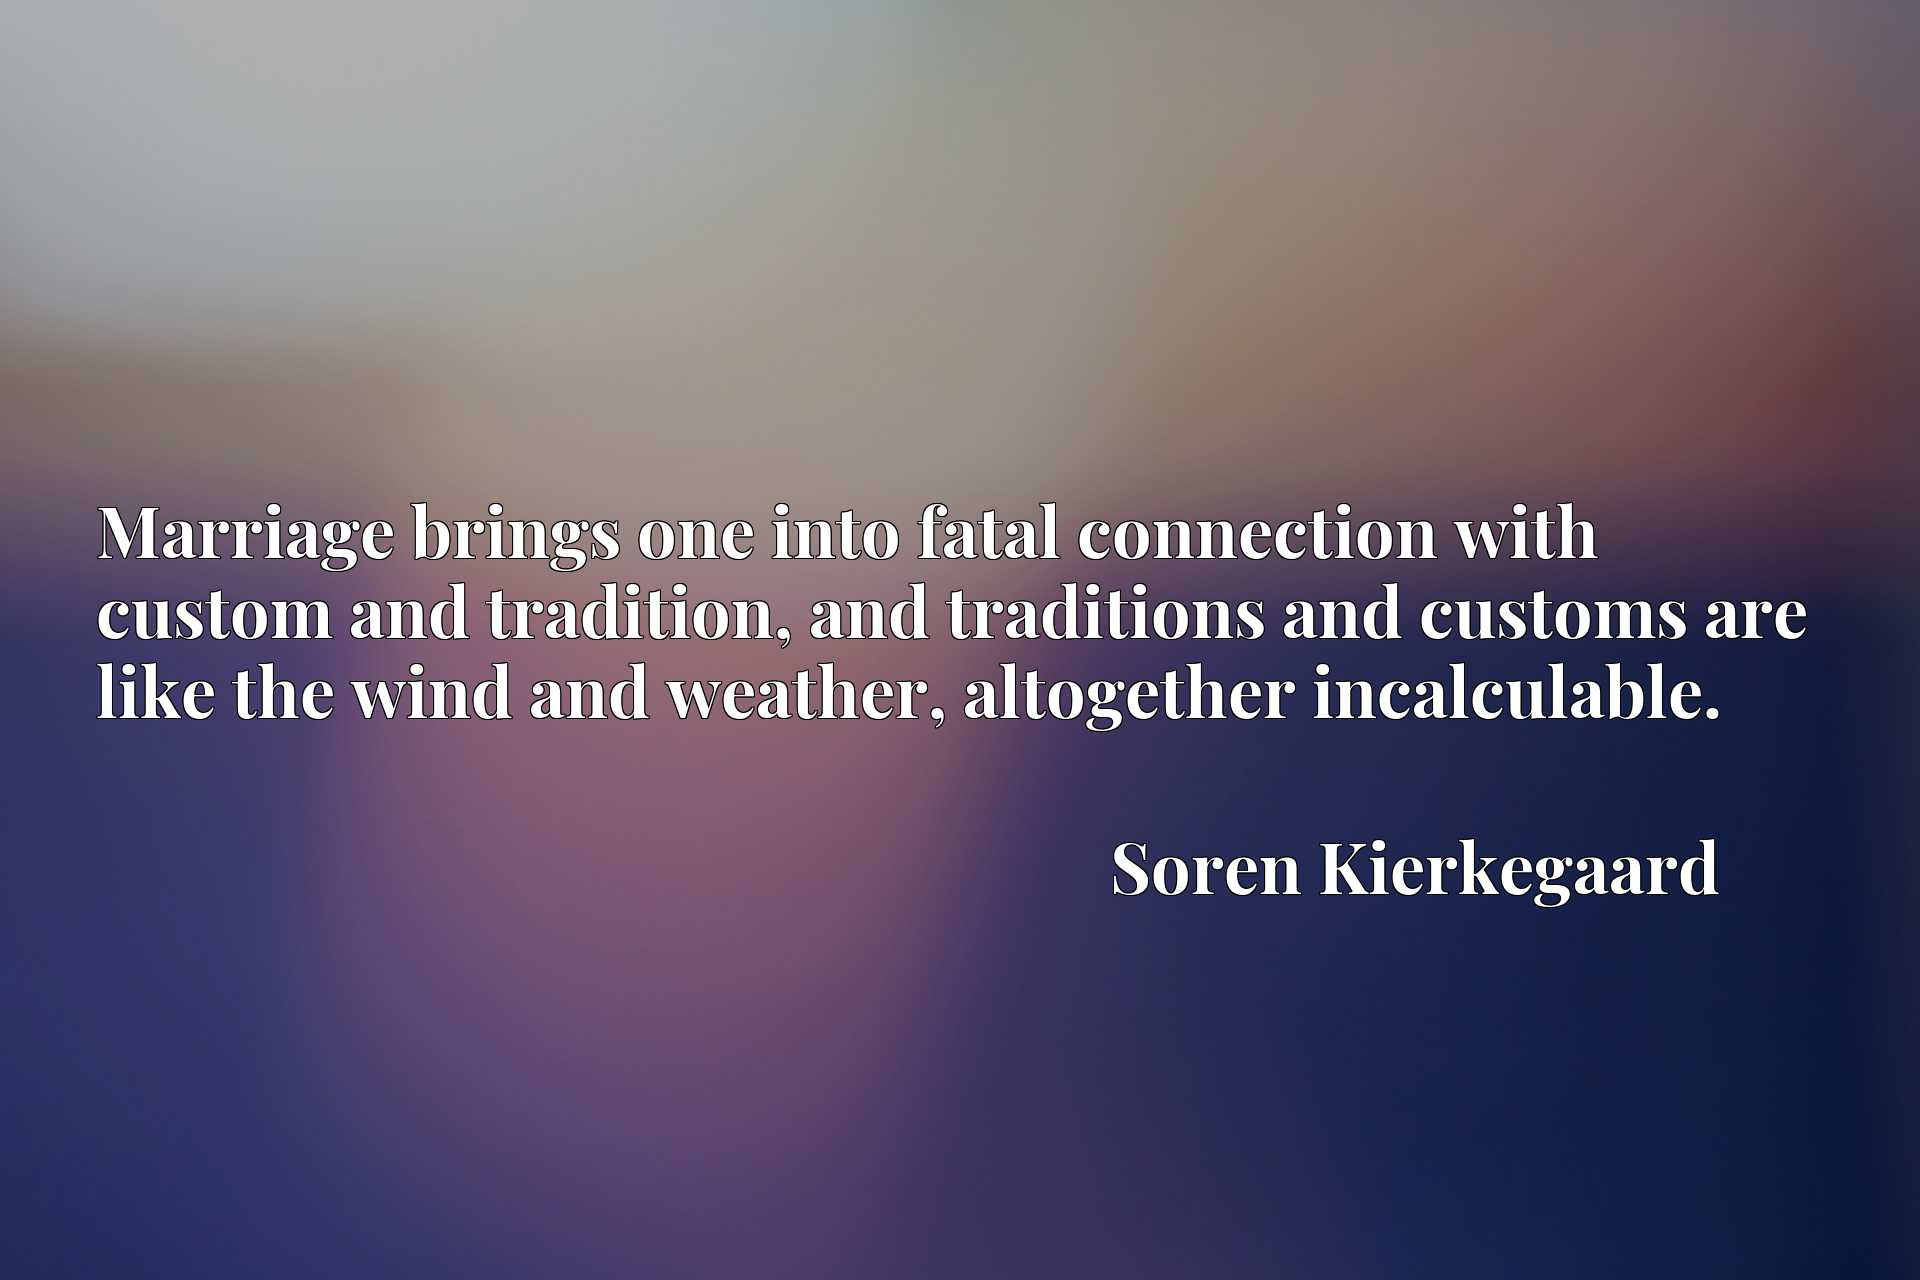 Quote Picture :Marriage brings one into fatal connection with custom and tradition, and traditions and customs are like the wind and weather, altogether incalculable.